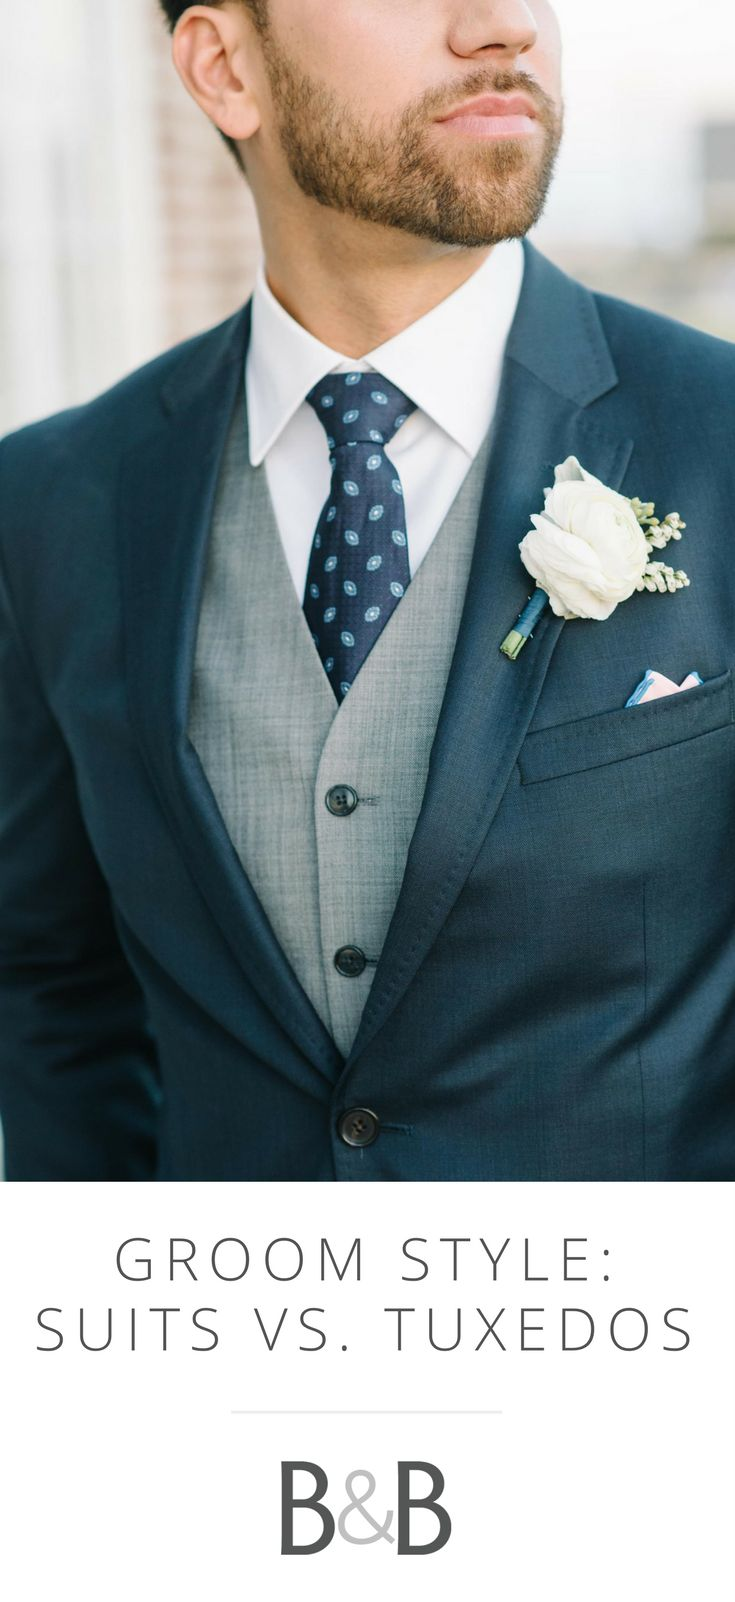 323 best Groom Fashion images on Pinterest | Groom fashion, Bridal ...